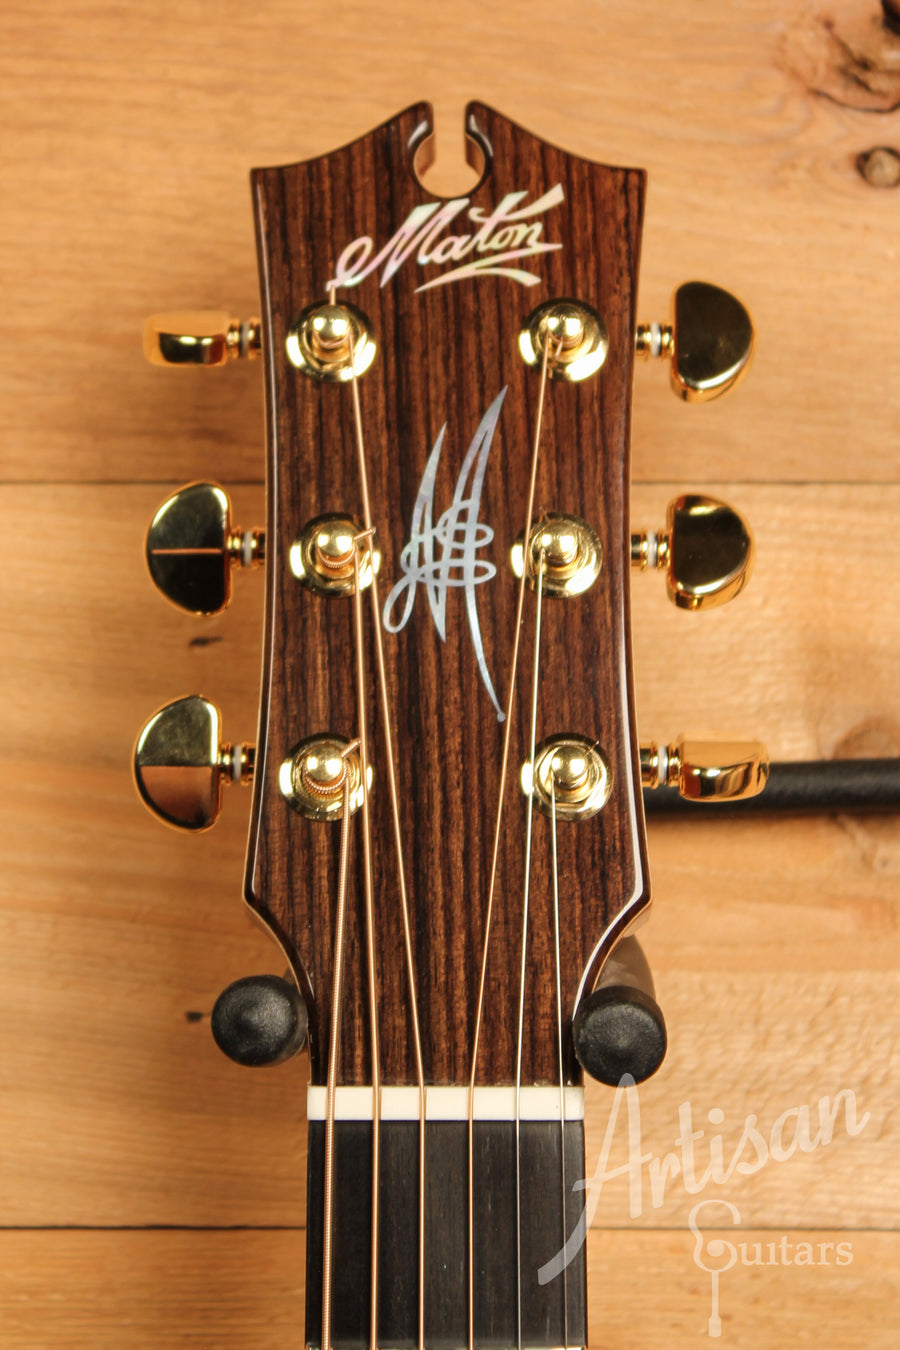 Maton EM100C Messiah Guitar Sitka Spruce and Indian Rosewood ID-11447